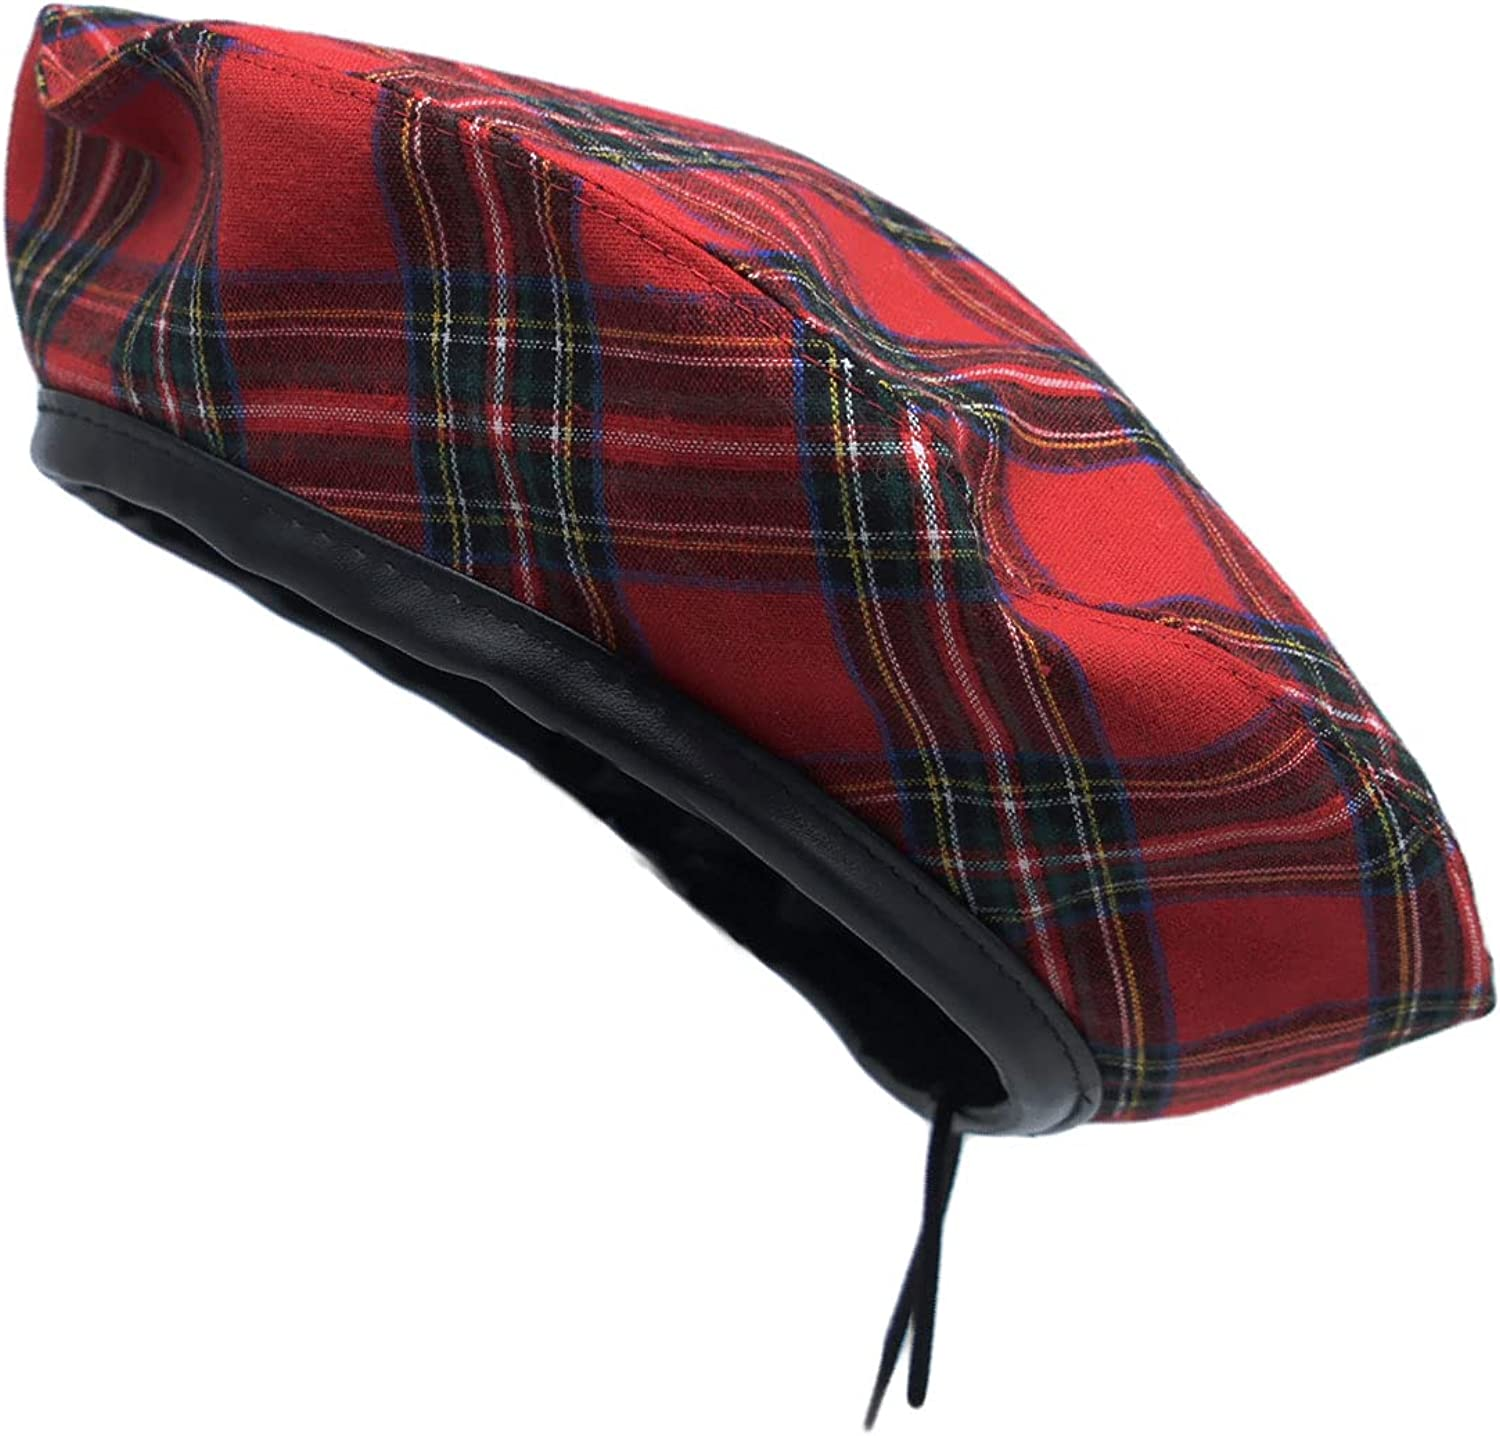 WITHMOONS Cotton Plaid Beret Hat Tartan Check French Beanie Cap YZF0083